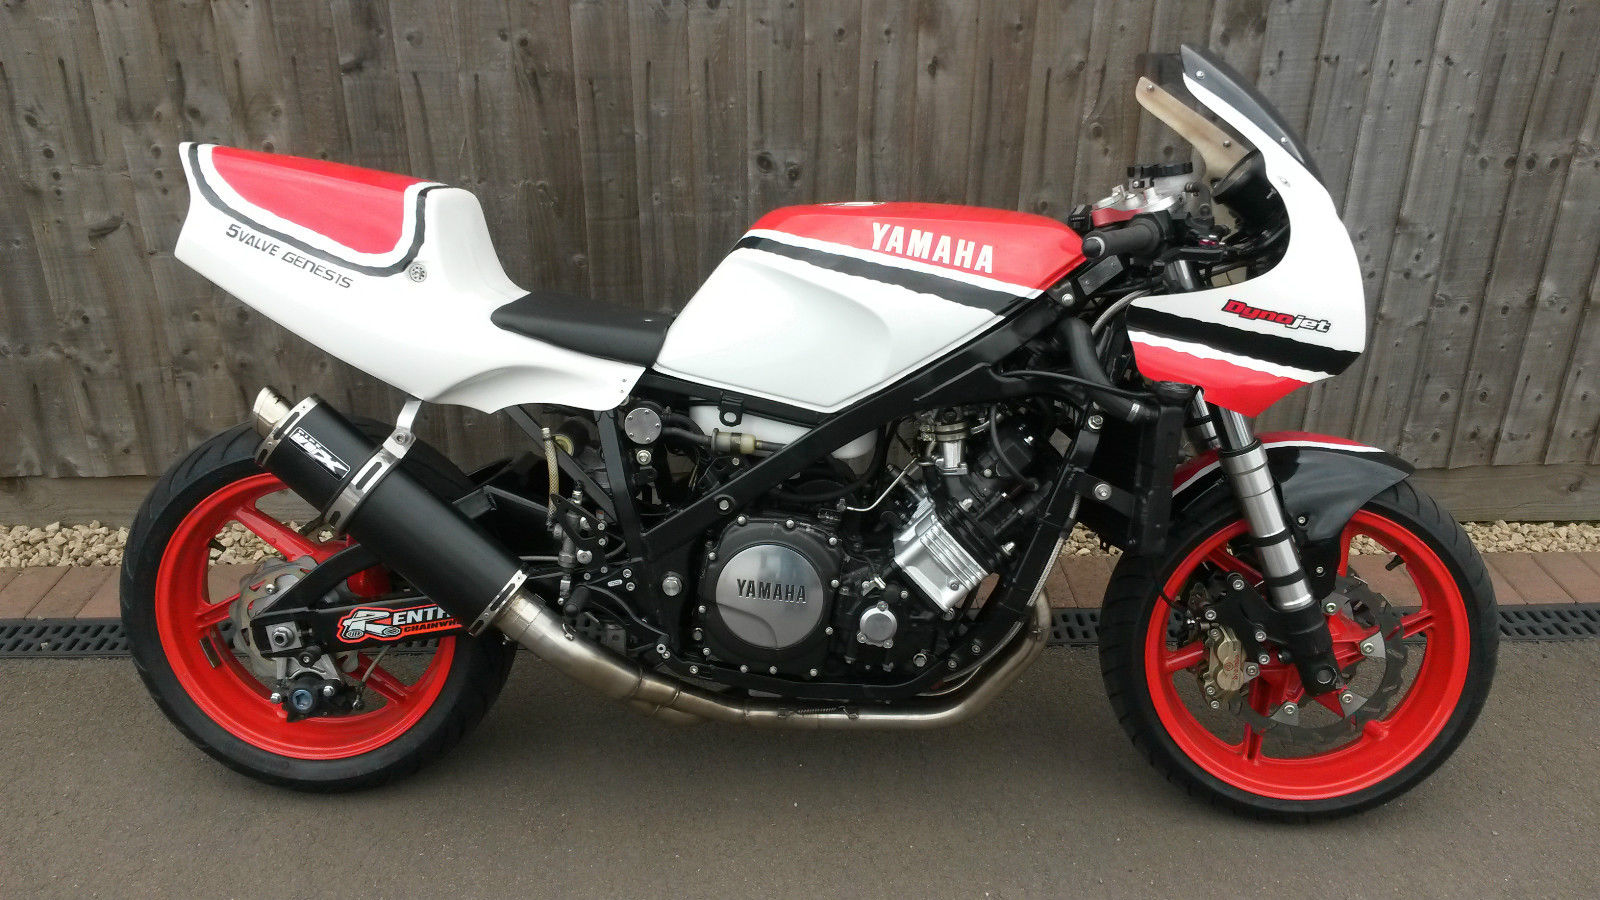 Fz Cafe Racer Conversion